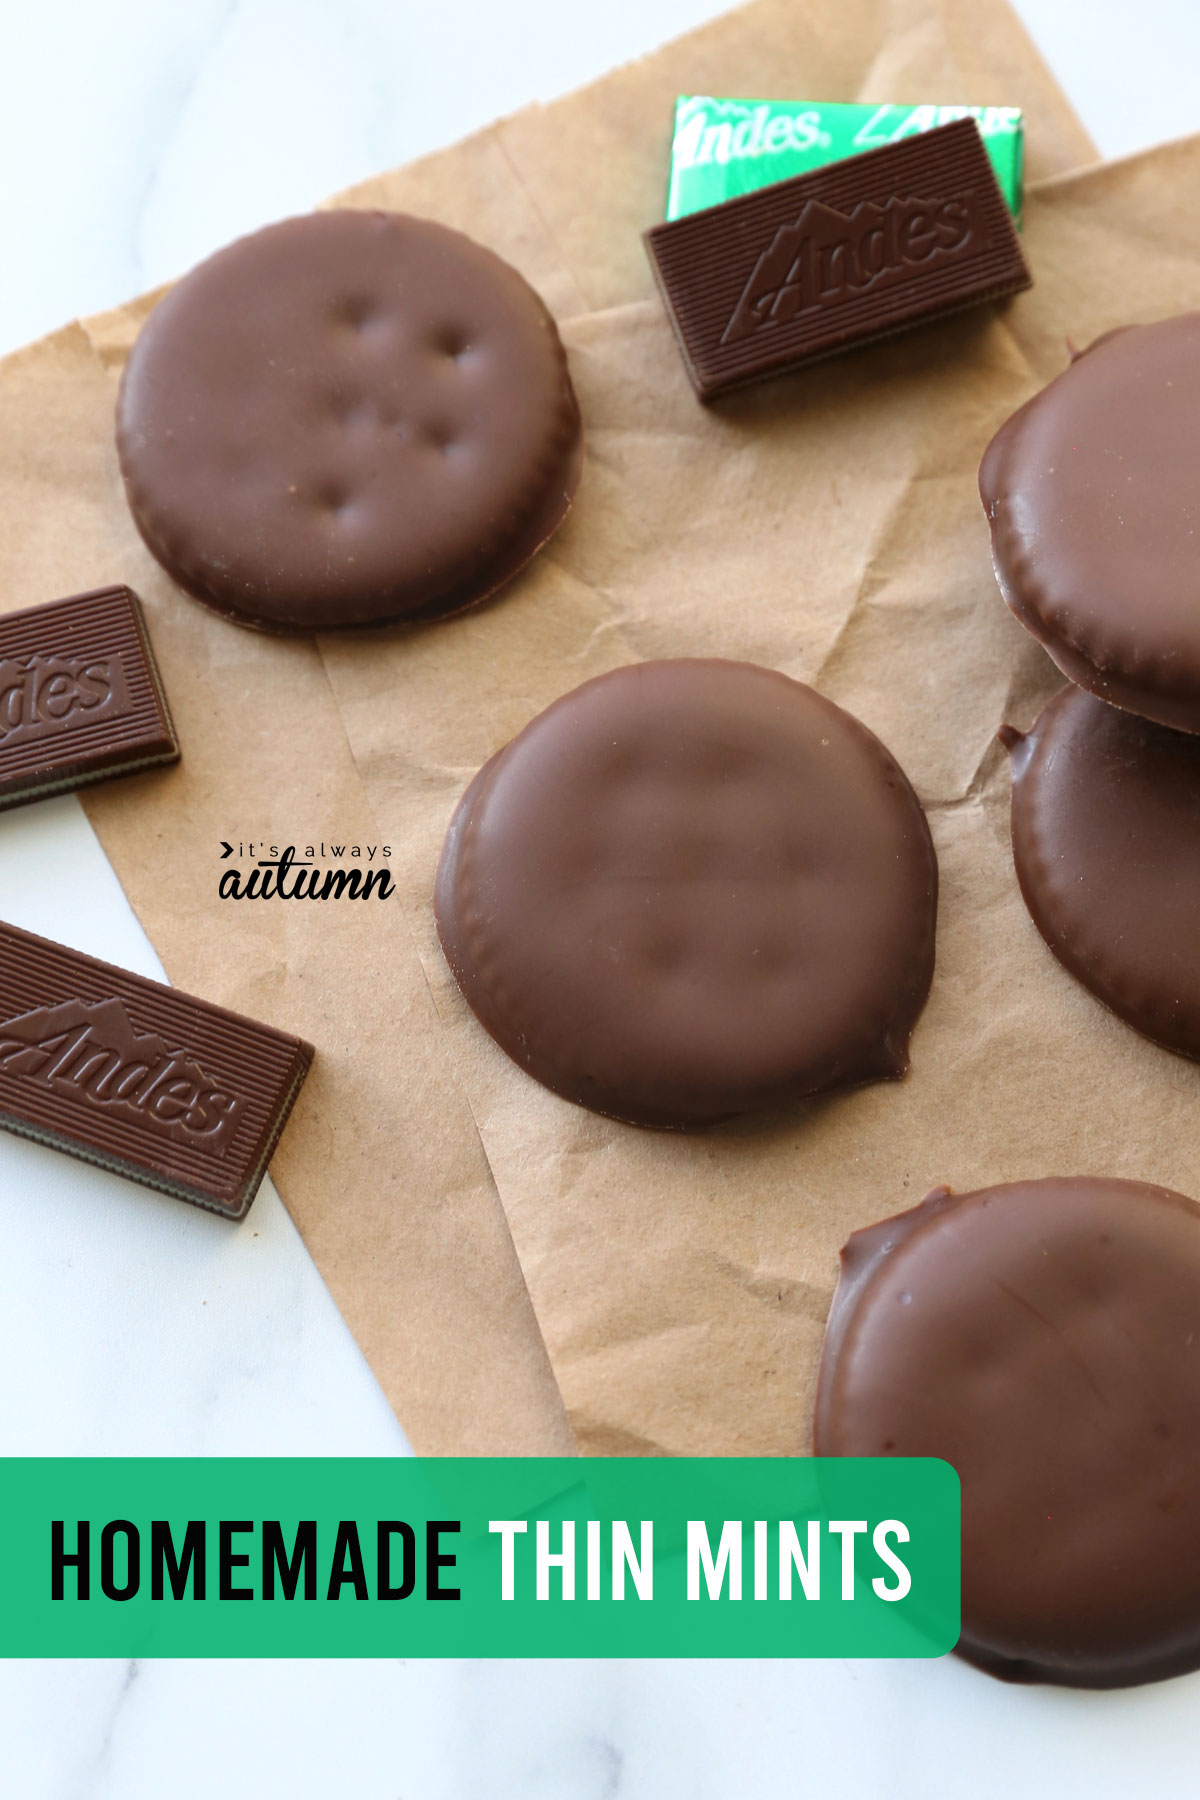 Homemade thin mints on brown paper with Andes mints